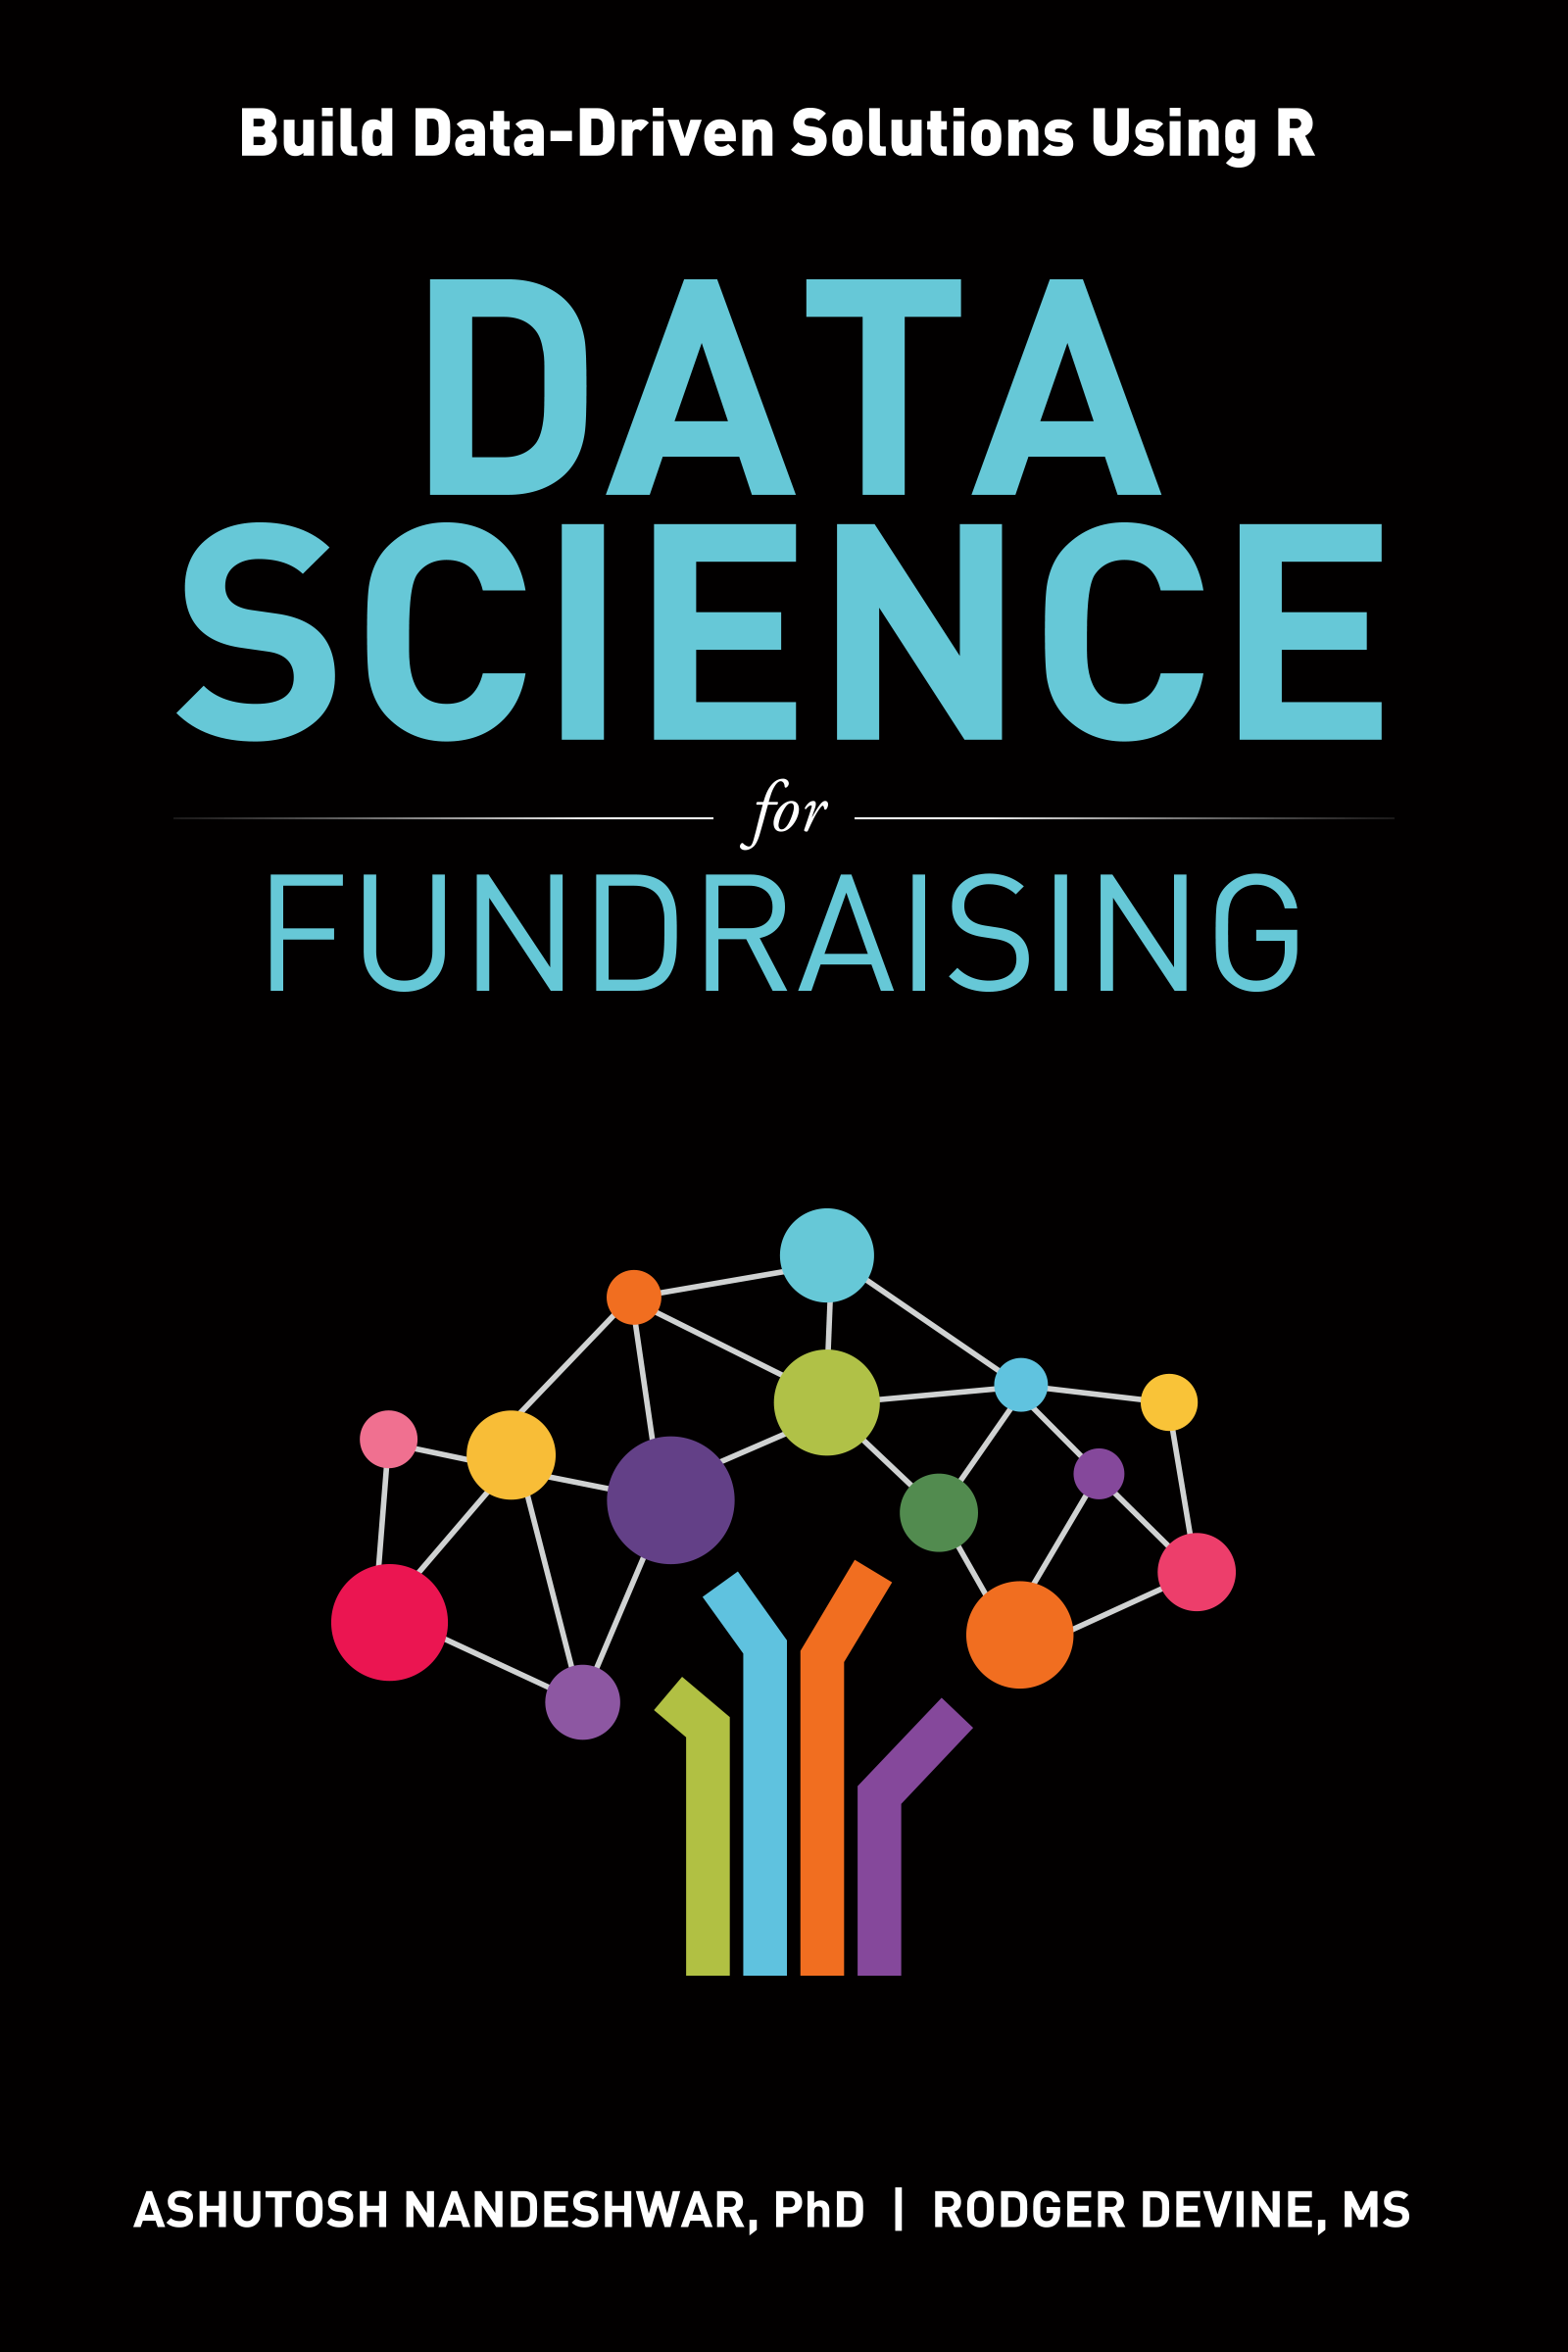 Data Science for Fundraising Build Data-Driven Solutions Using R by Ashutosh Nandeshwar and Rodger Devine